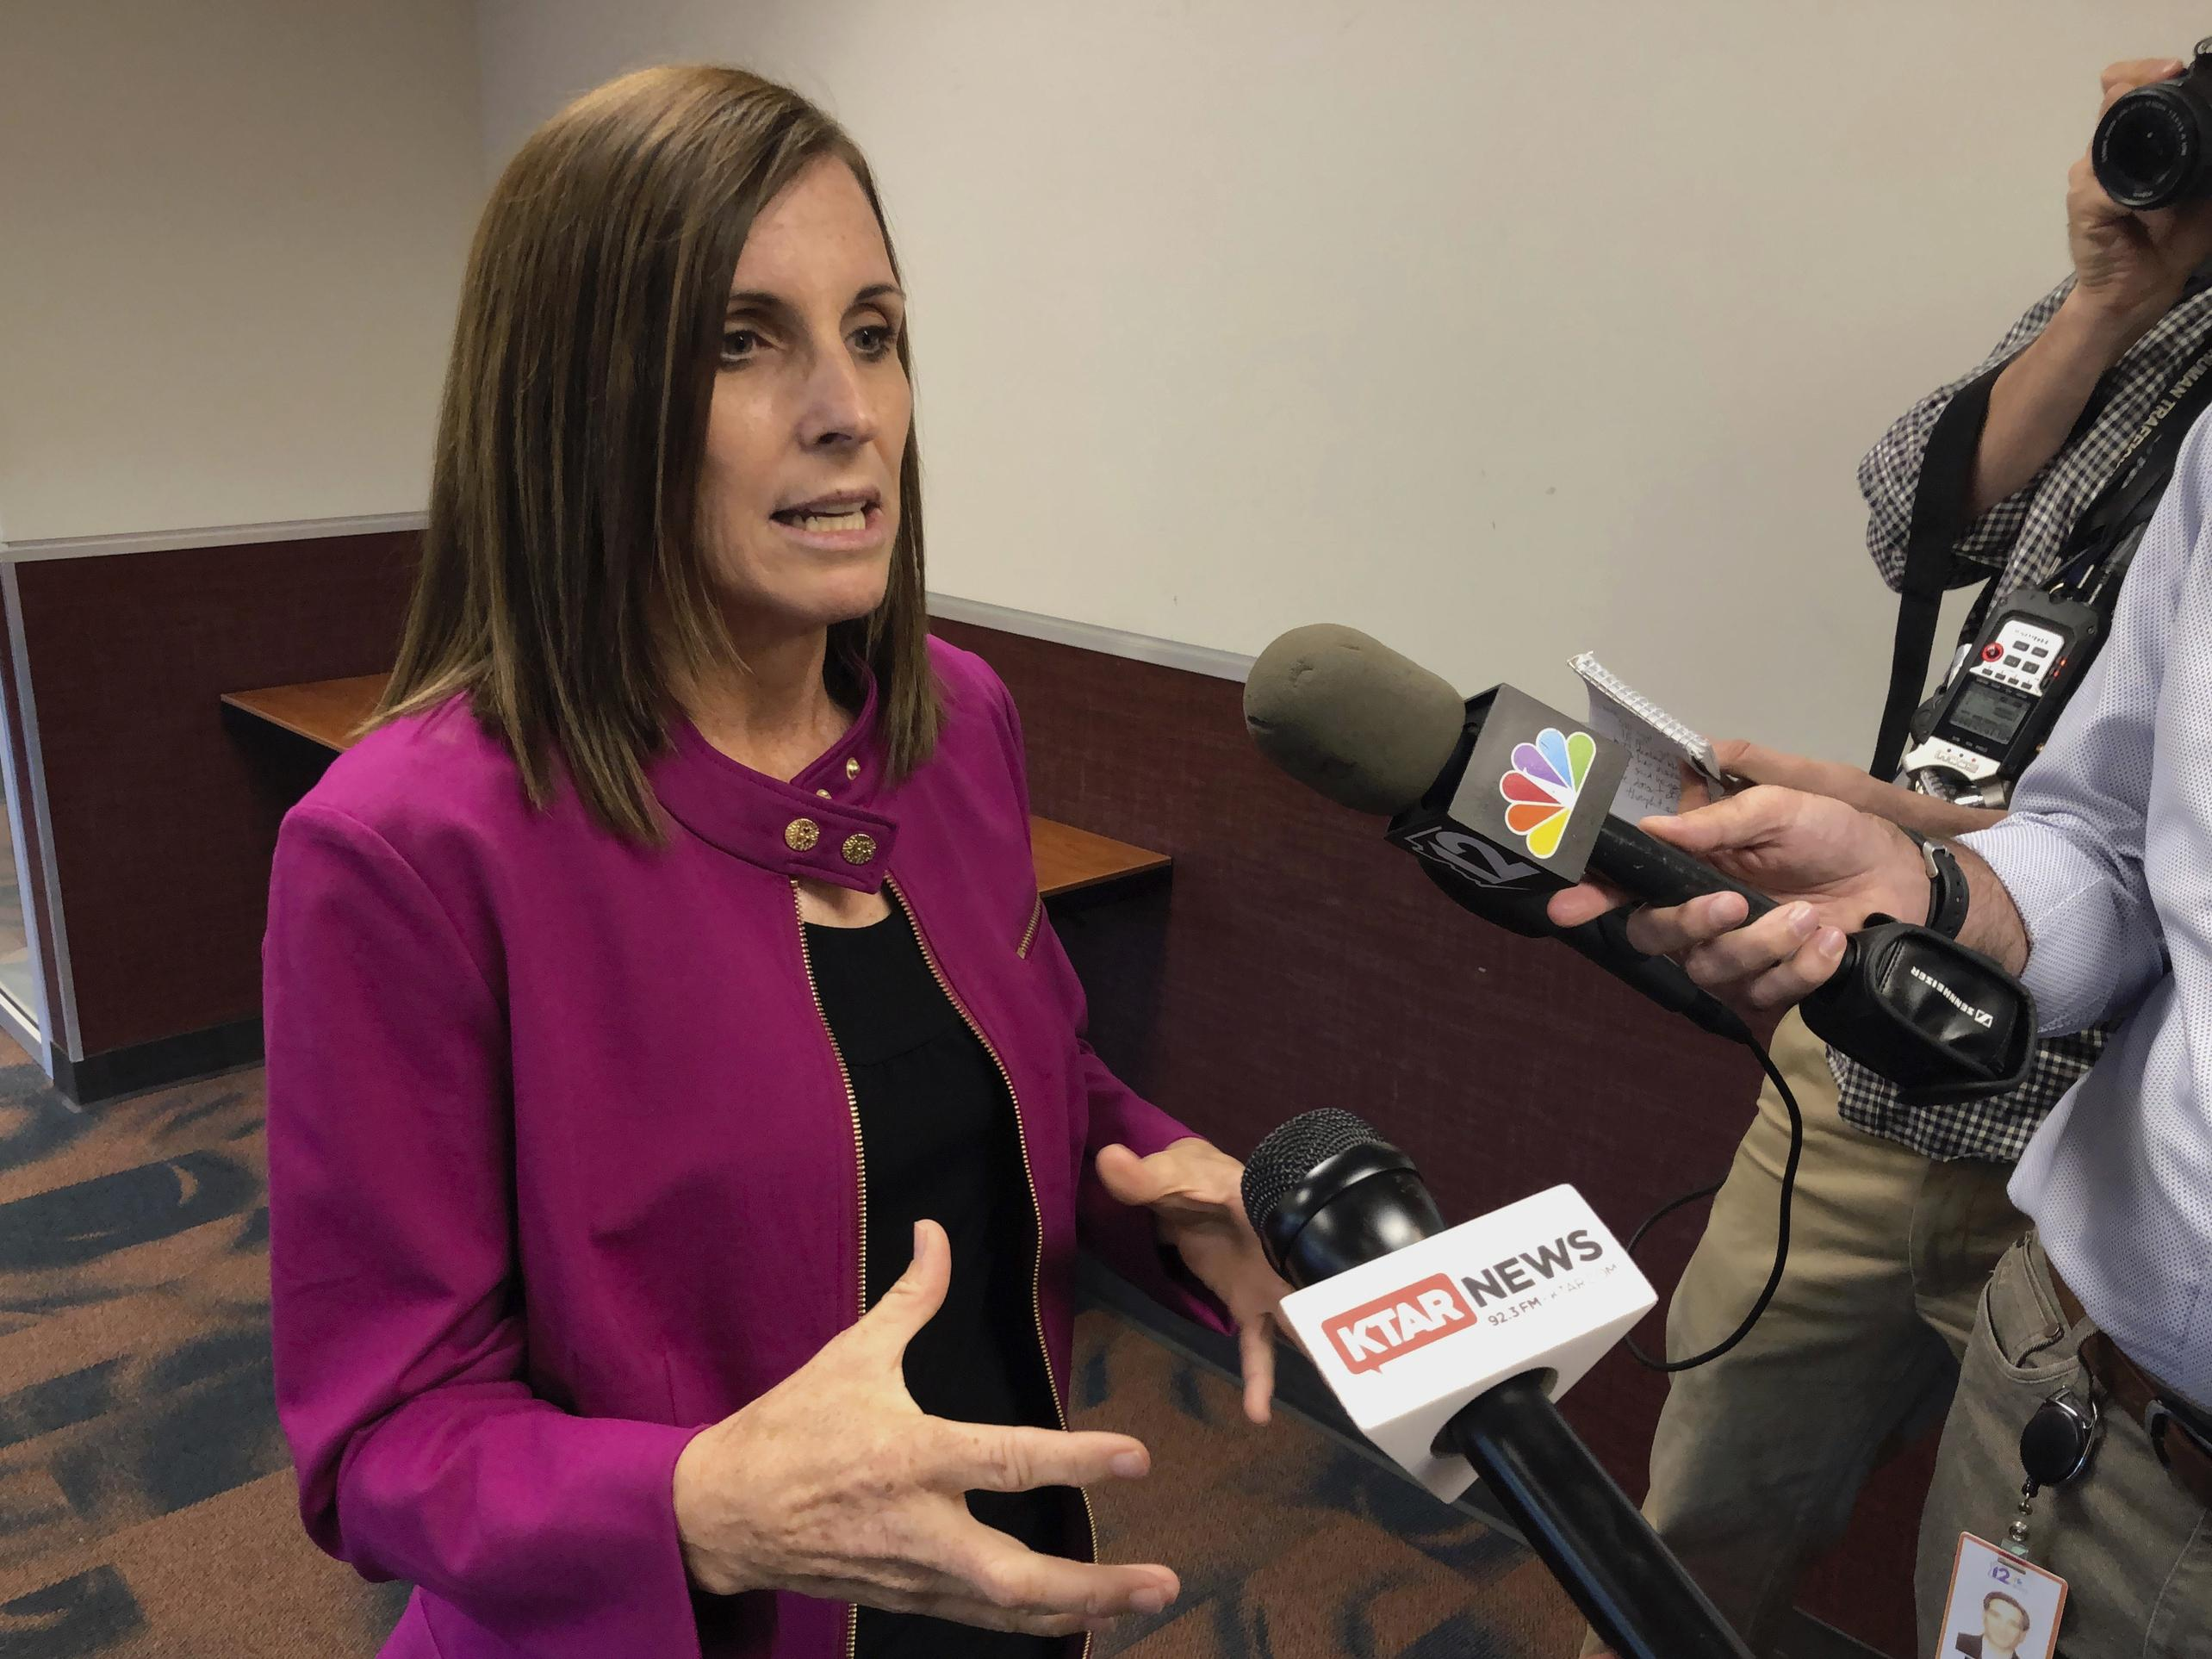 McSally slam of reporter as 'liberal hack' credited with fundraising bump for Democratic rival Kelly